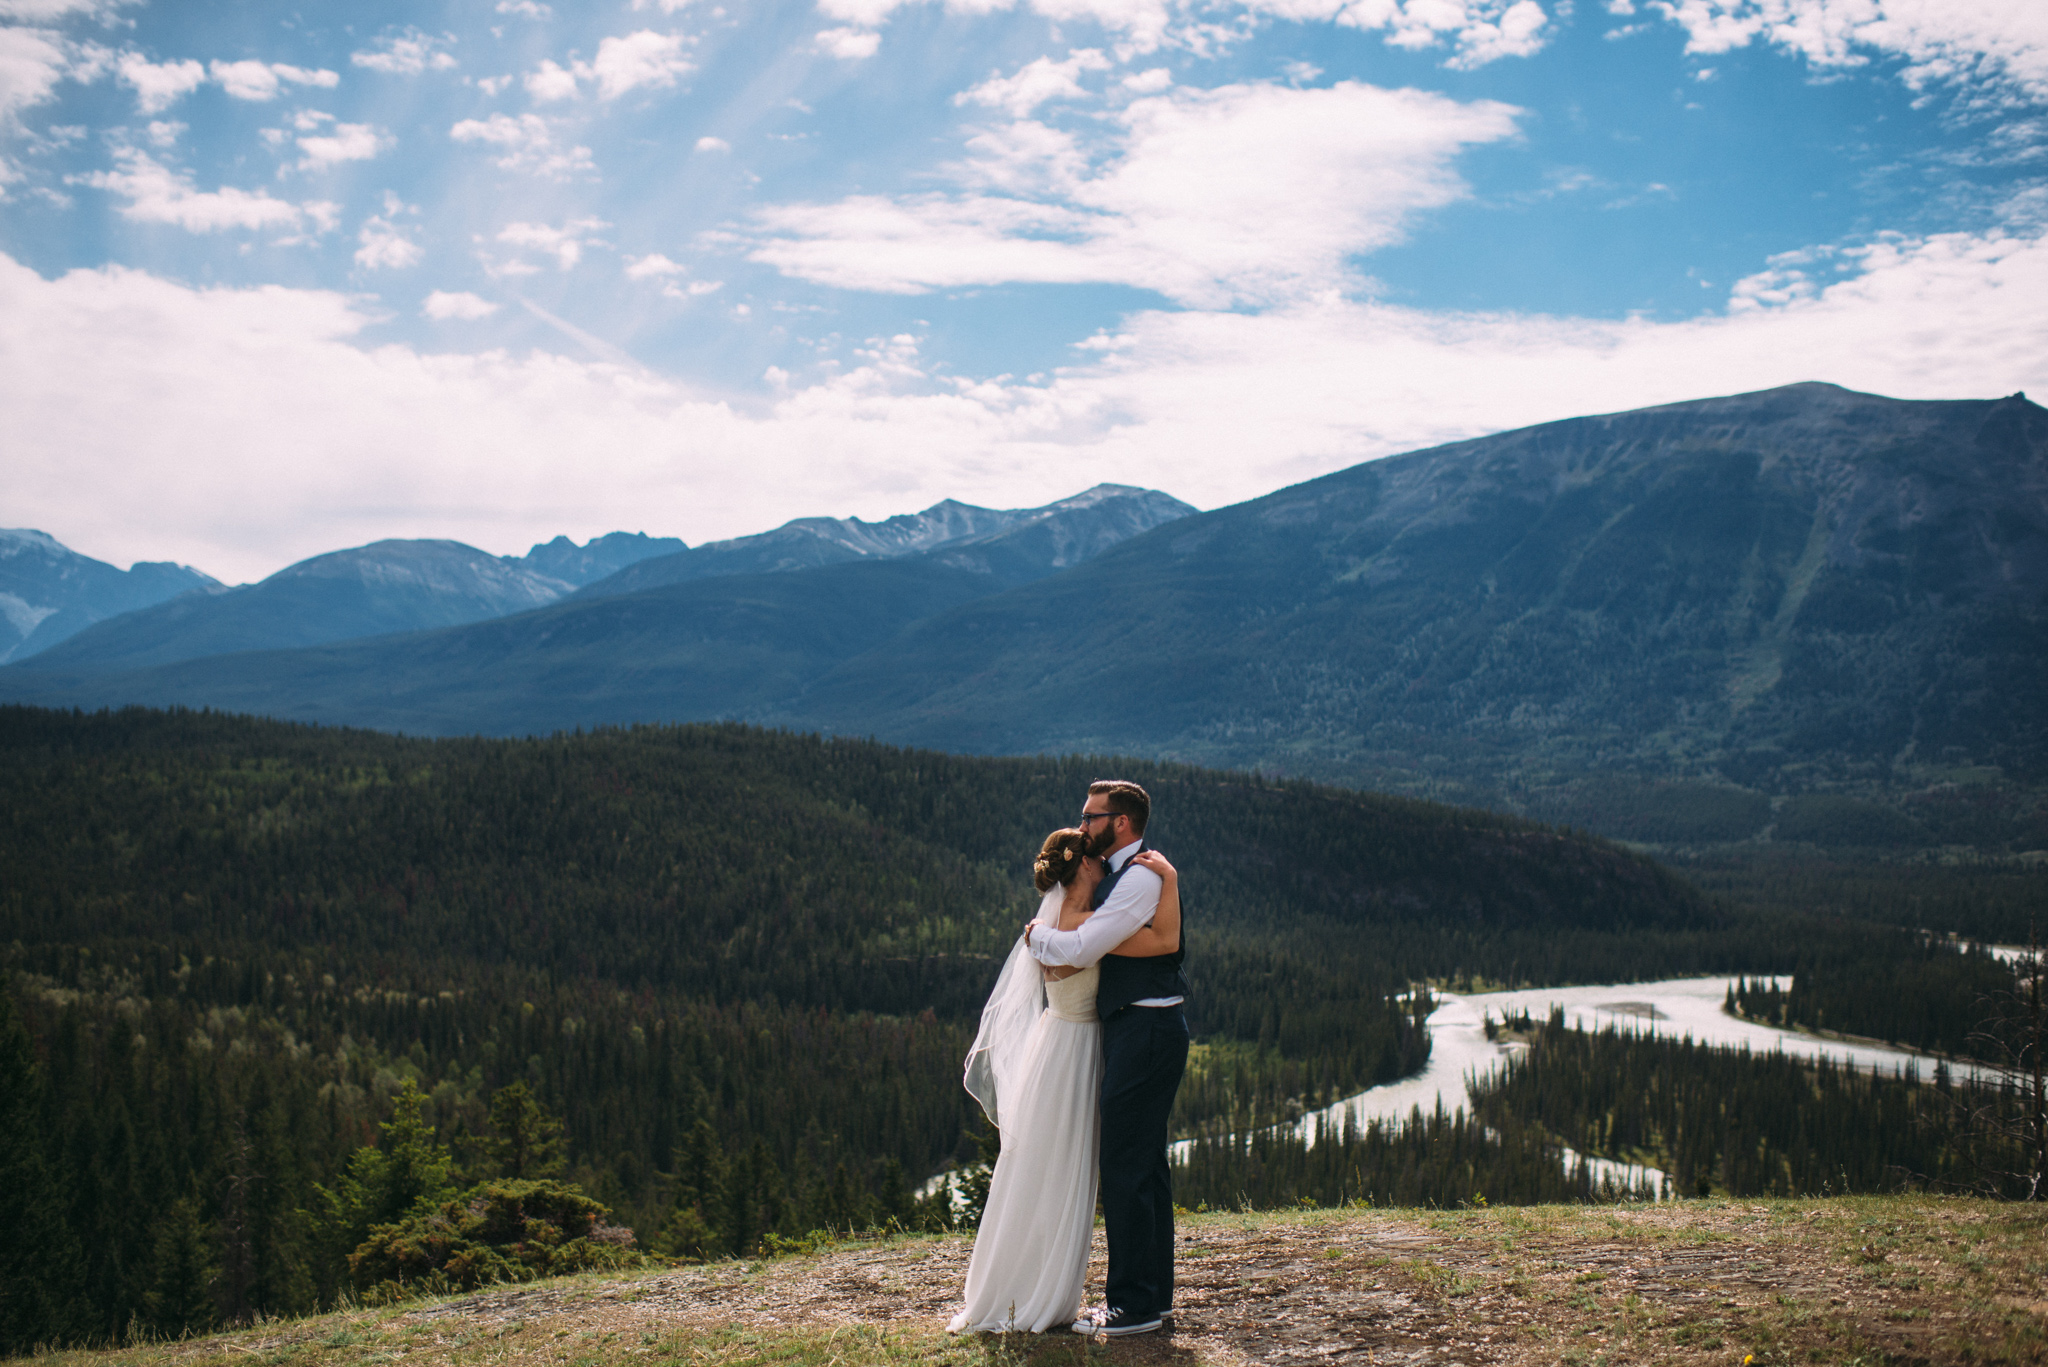 View More: http://kaihlatonai.pass.us/meghanandbryon